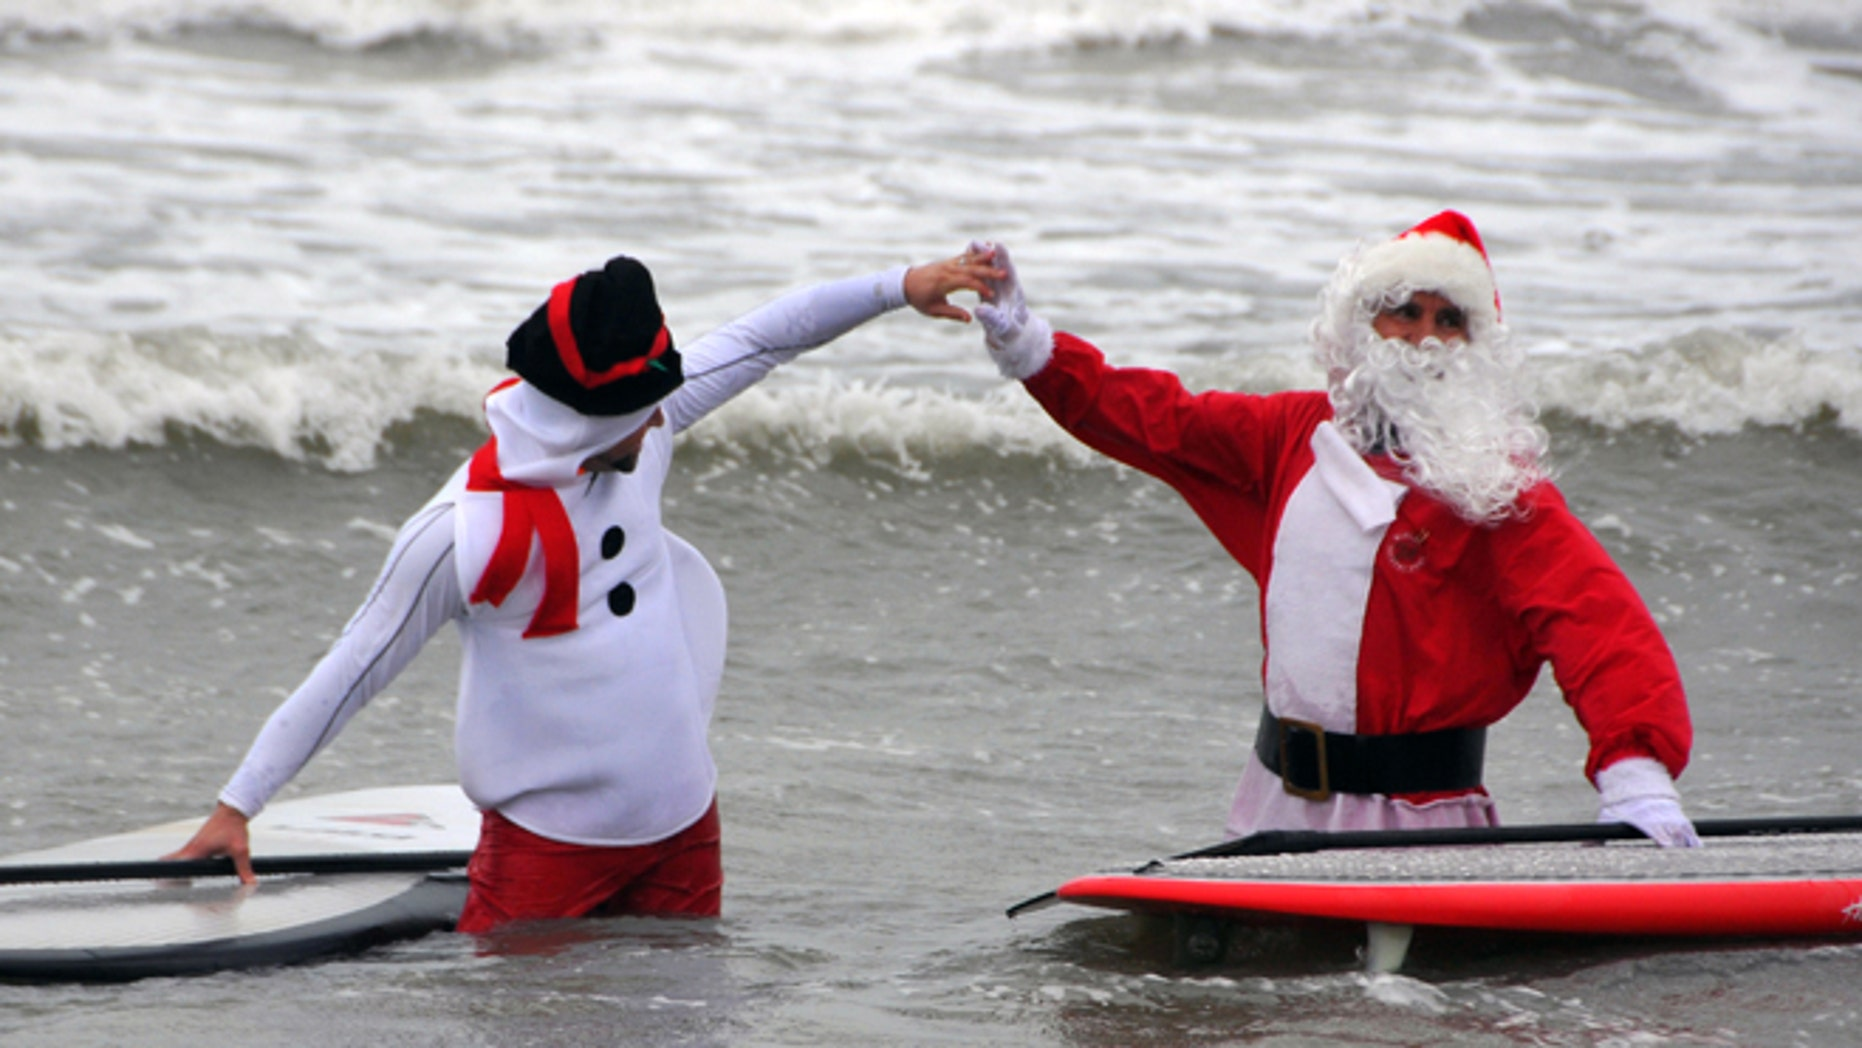 """Dec. 24, 2013: George Trosset Jr., dressed as a snowman, left, and his dad, event organizer George Trosset, high-five each other out in the waves during the fourth annual """"surfing Santas"""" event in Cocoa Beach, Fla."""